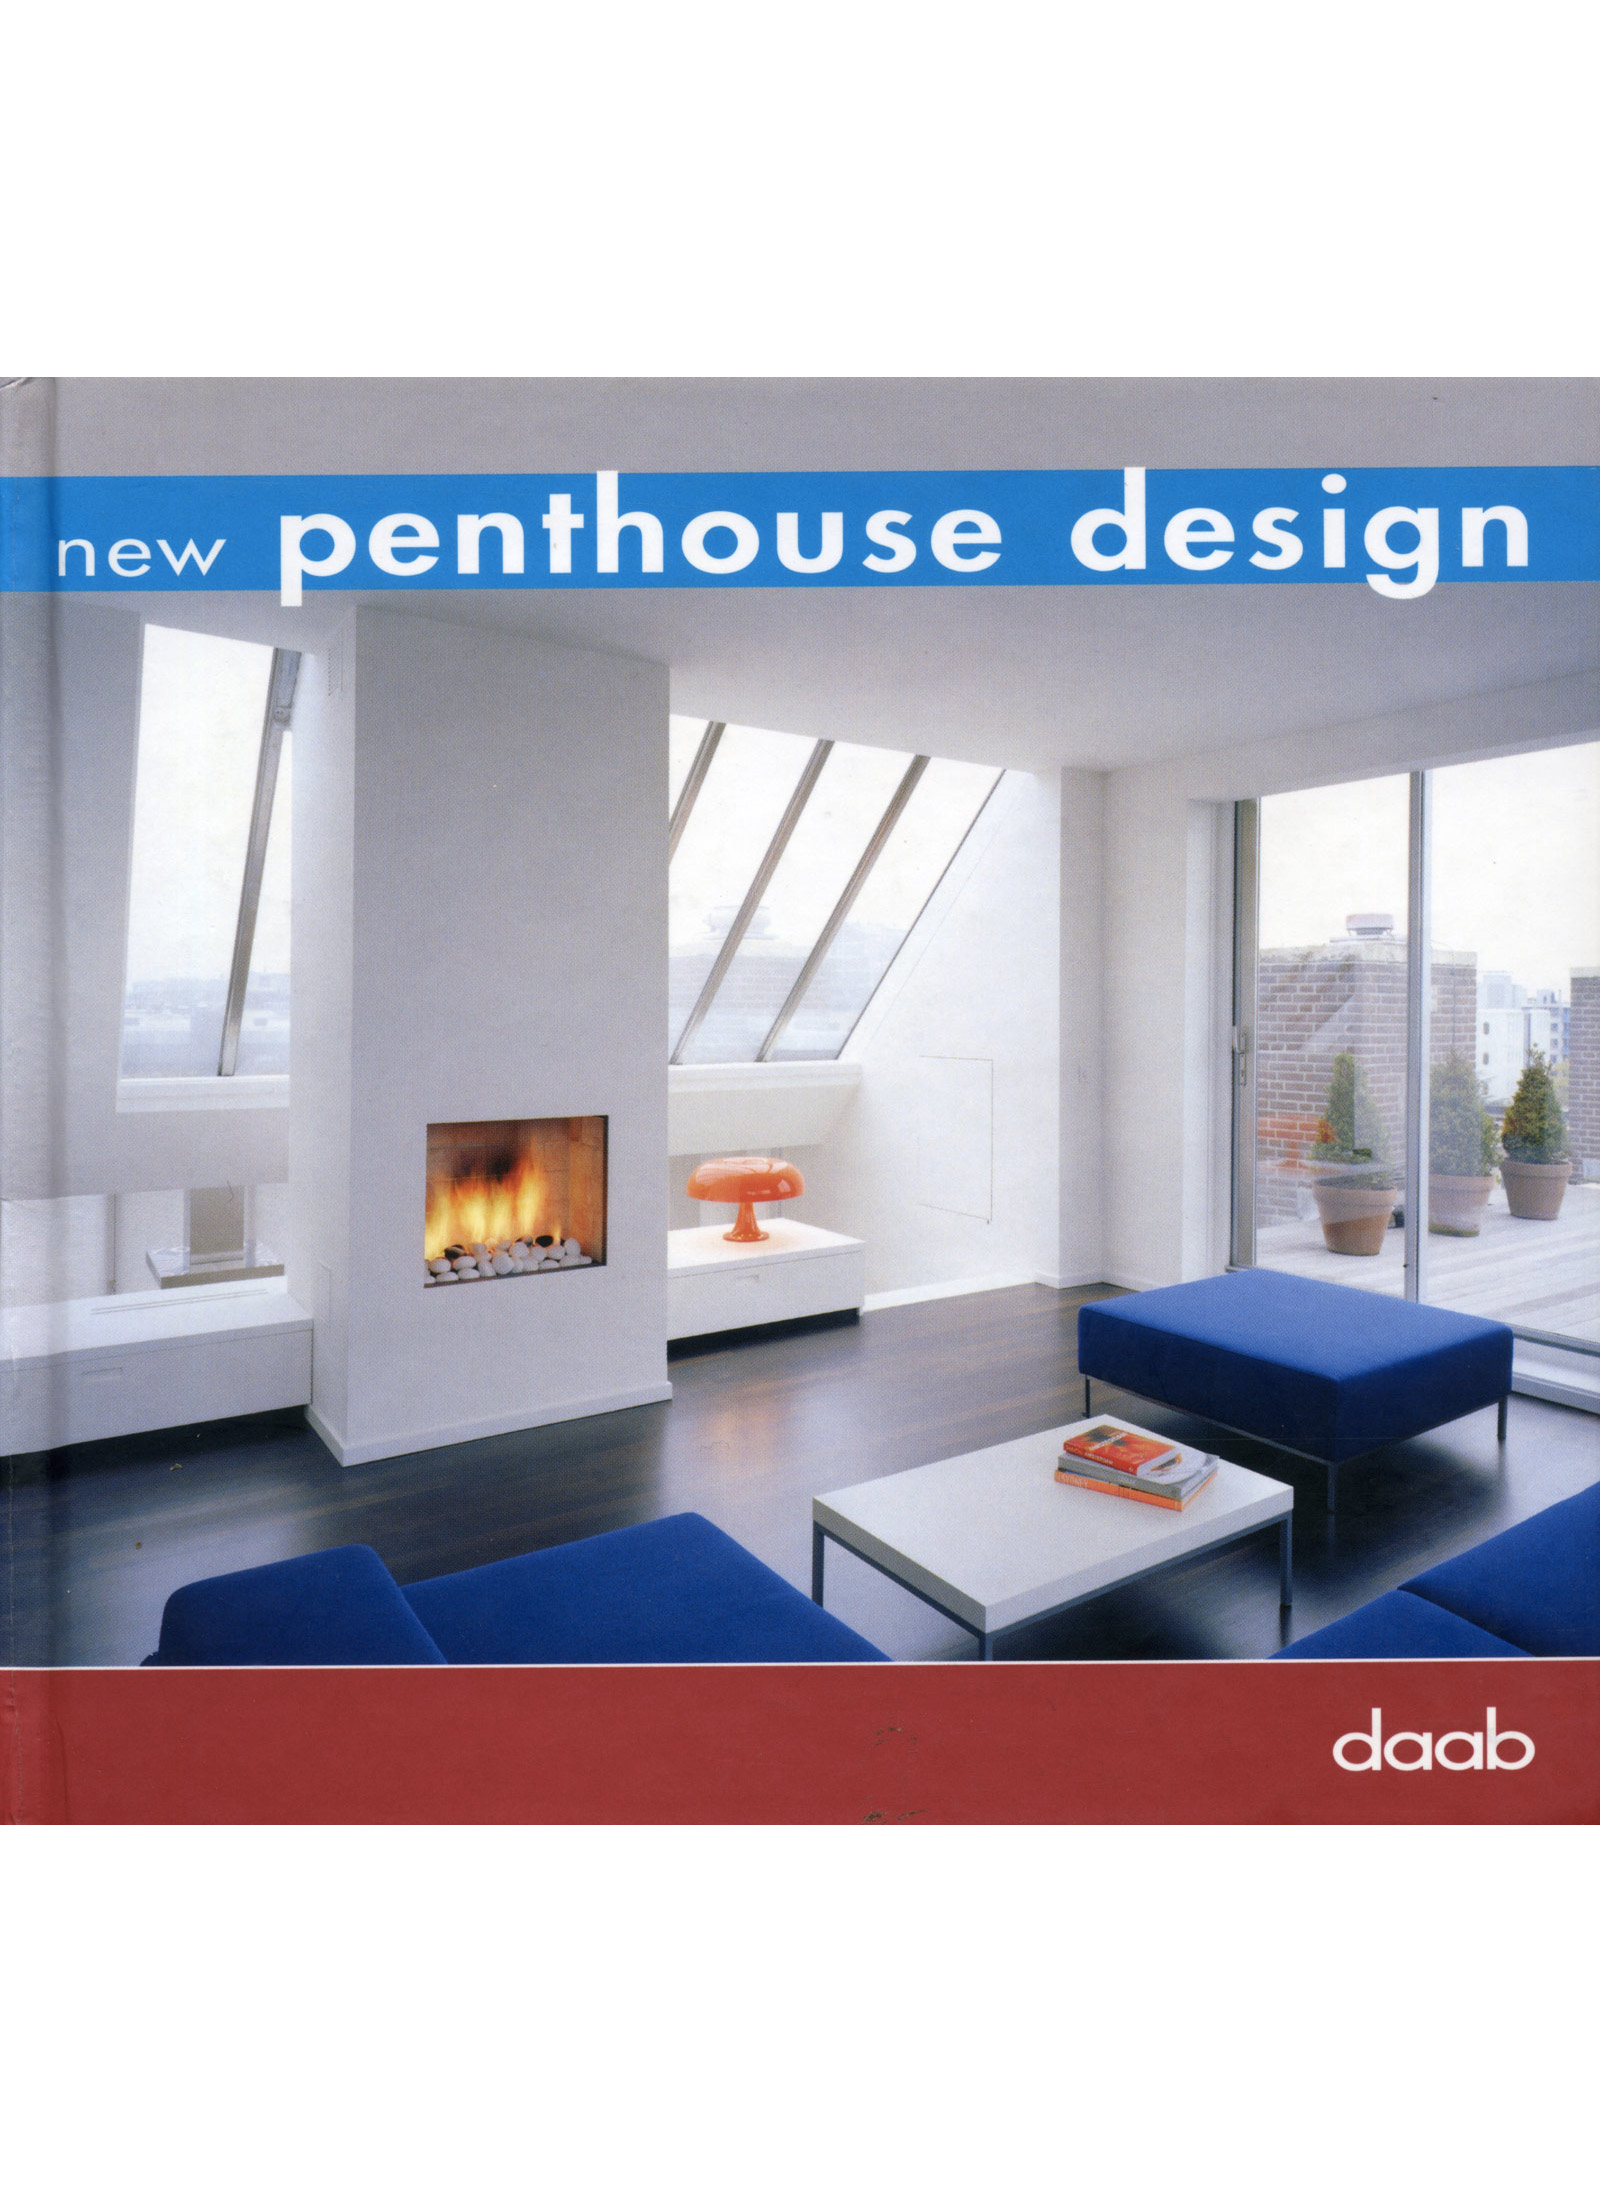 200700 new penthouse design 00 olivier dwek for Architecture 00